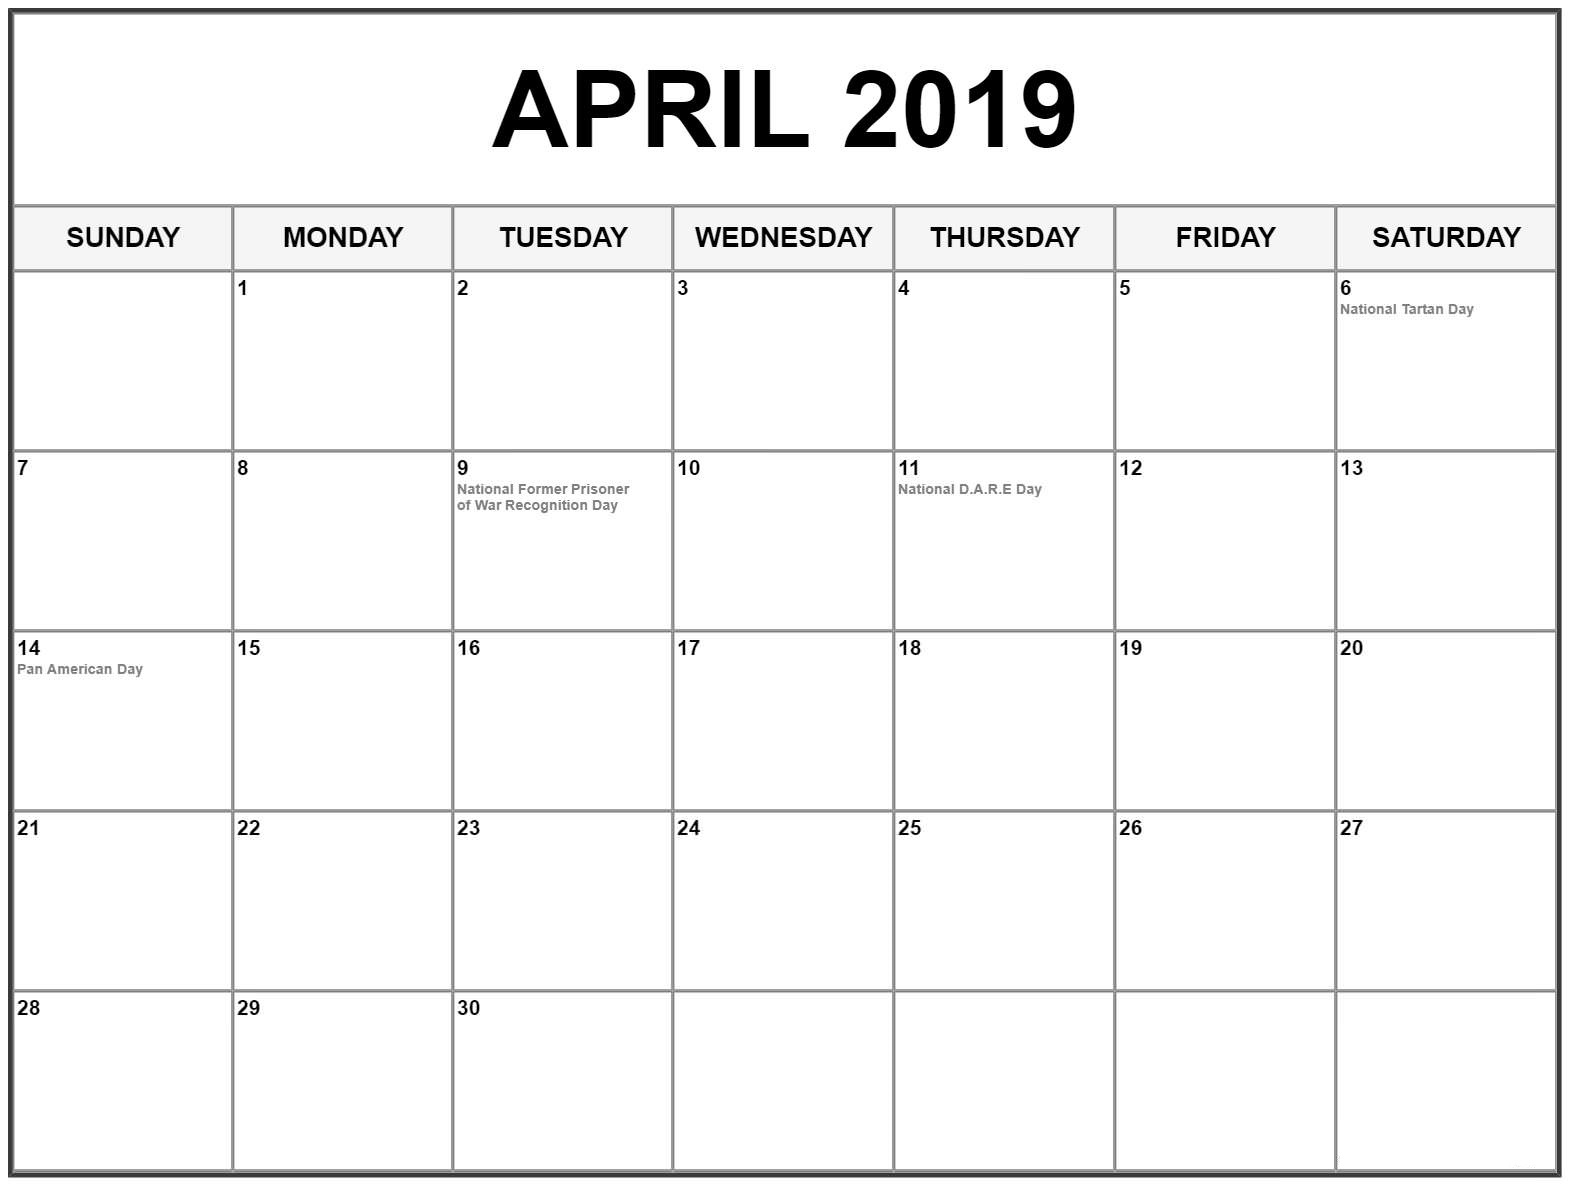 April 2019 Calendar Australia With Bank Holidays